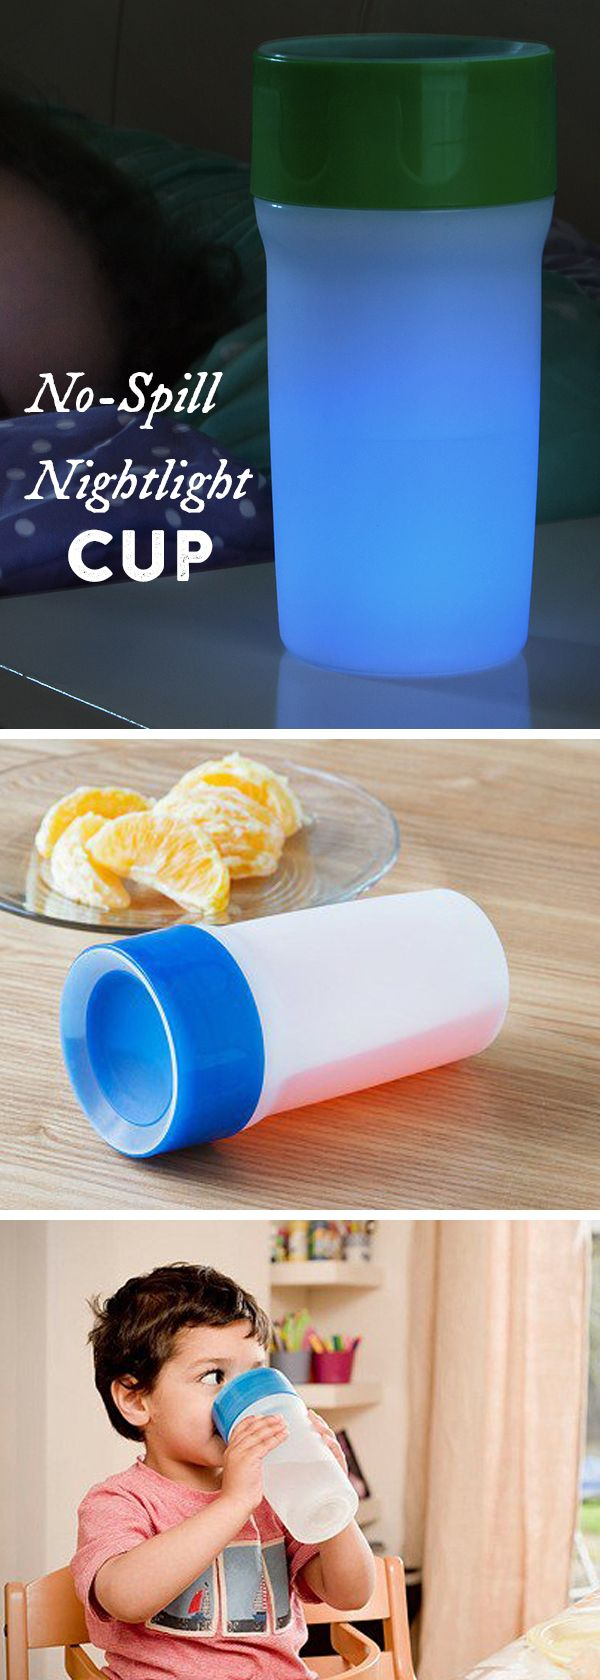 Half spill-proof cup, half soft, glowing nightlight. The 360º valve lets you drink anywhere around the rim, then shuts to stop spills.